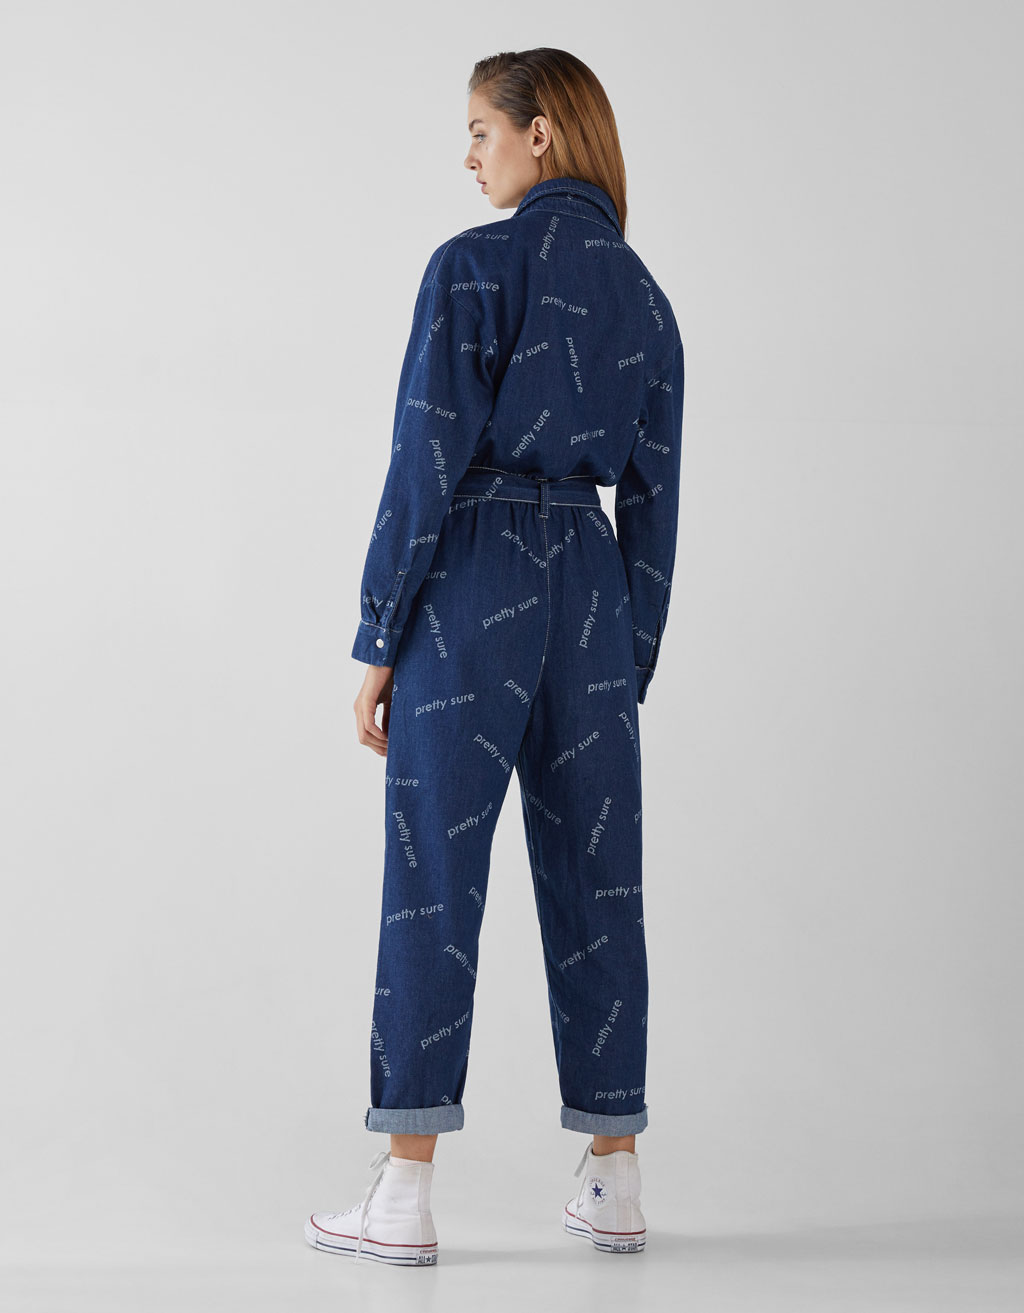 best sneakers outlet dirt cheap Printed denim jumpsuit with belt